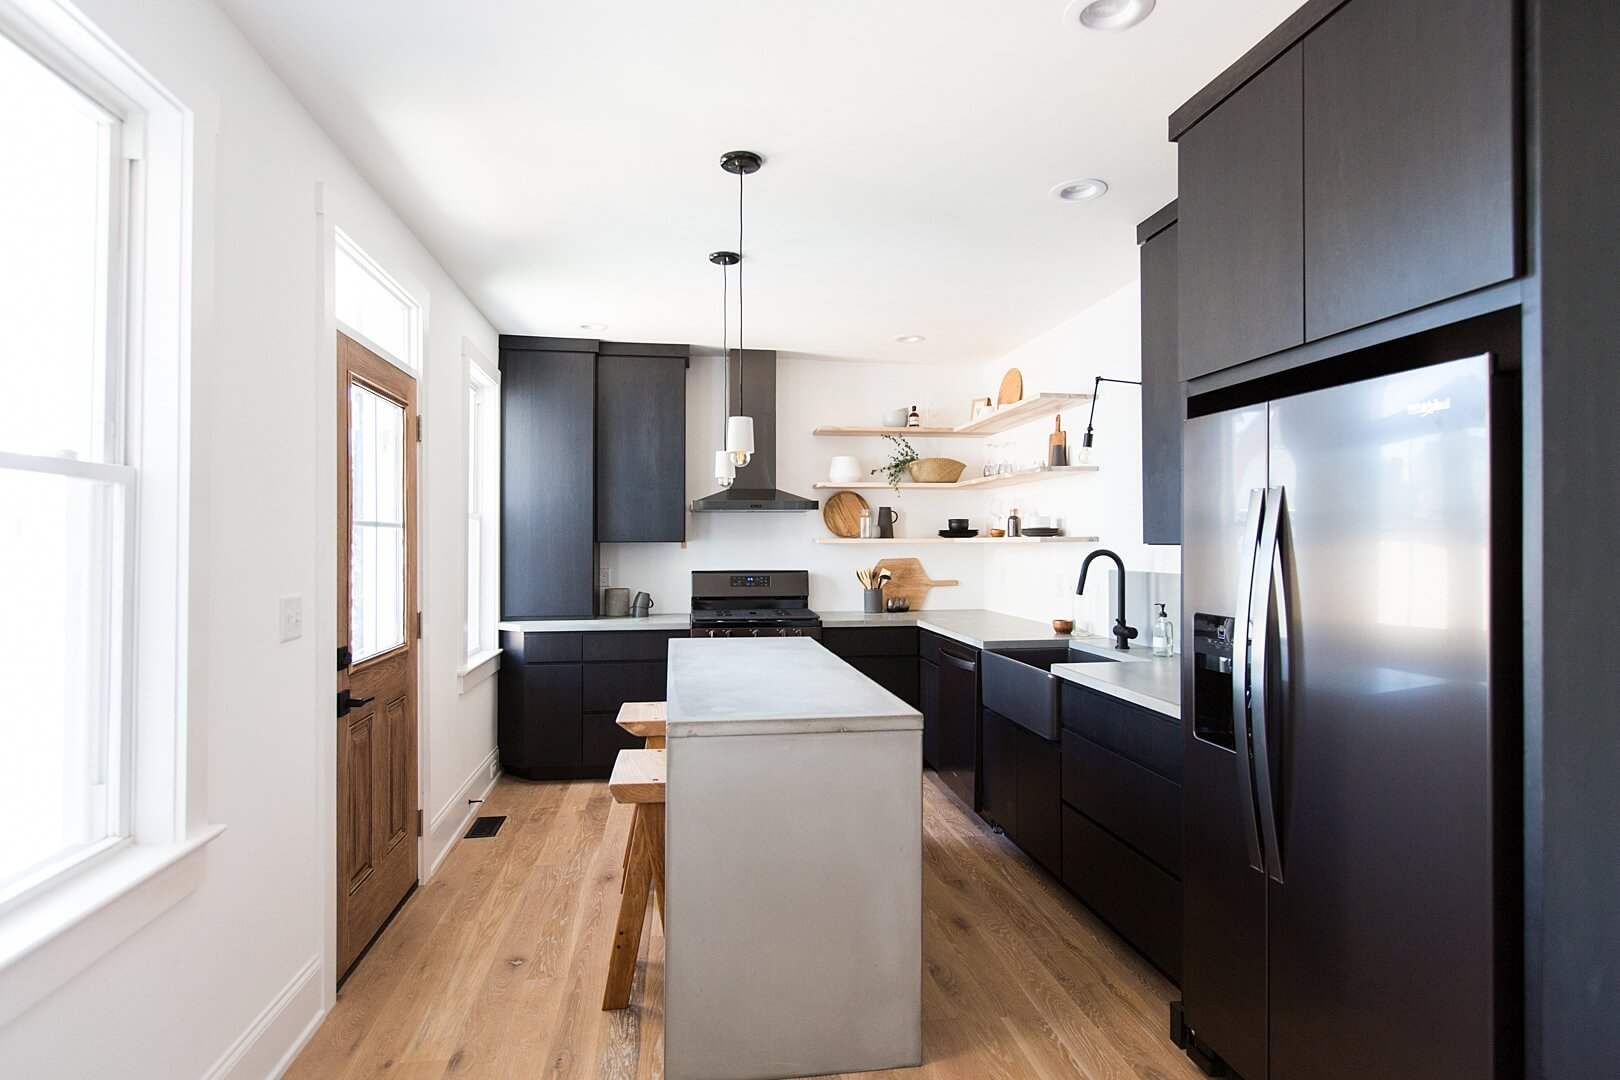 Modern kitchen with white oak floors and dark cabinets.